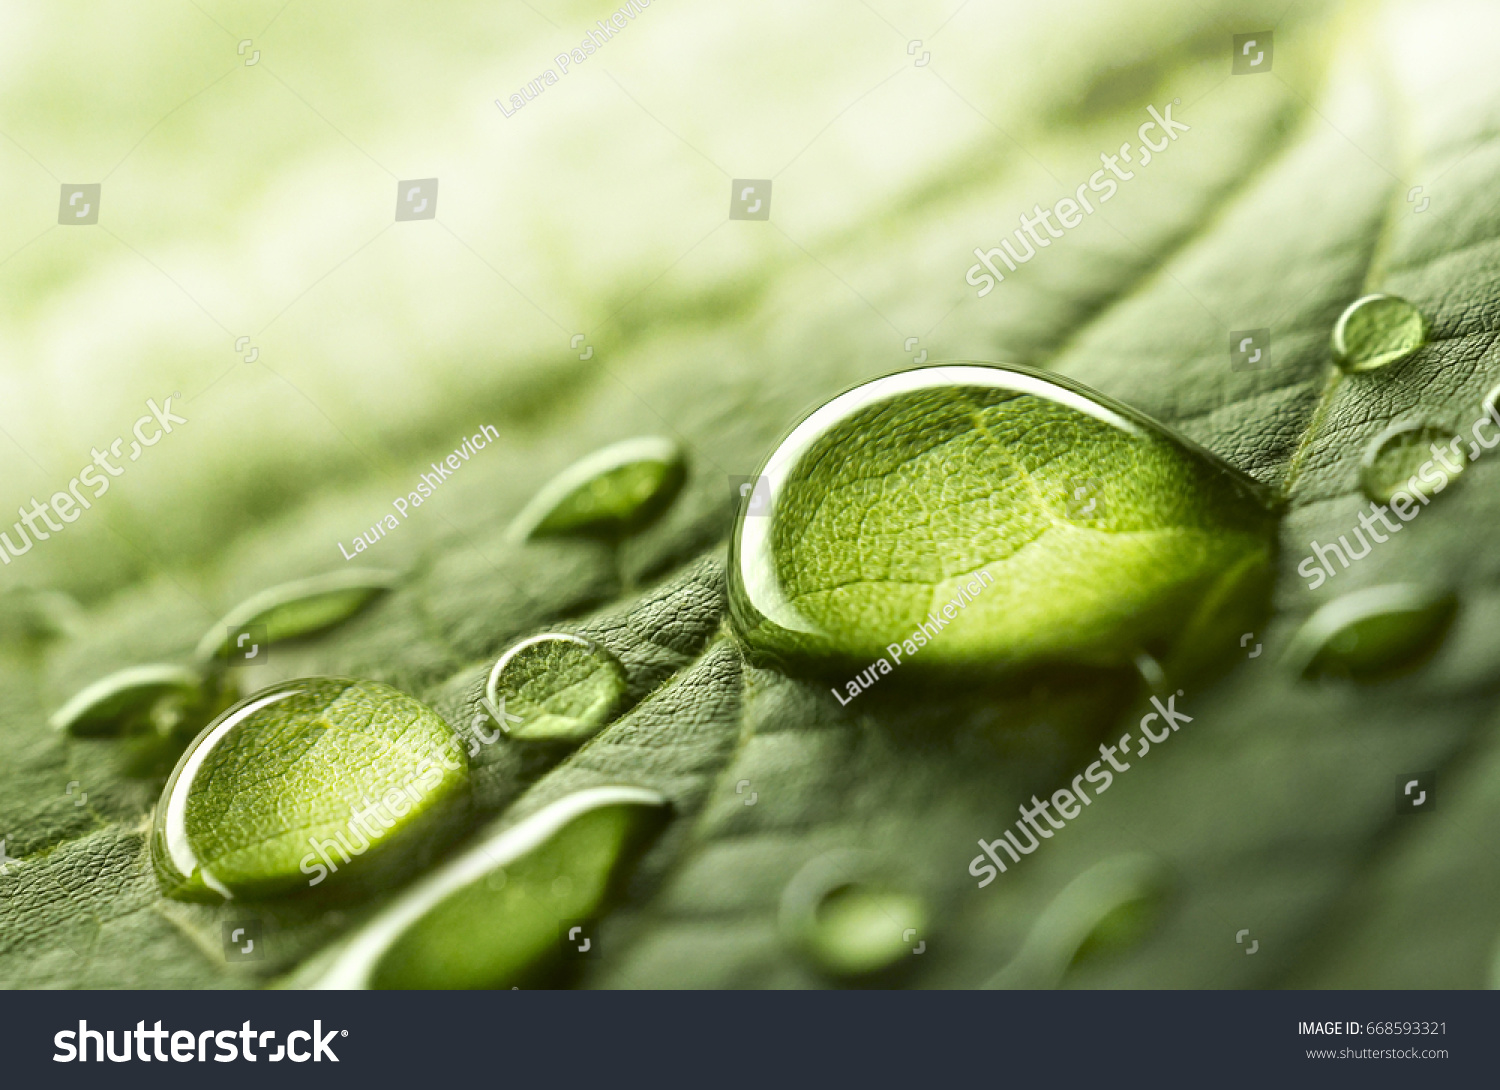 Large beautiful drops of transparent rain water on a green leaf macro. Drops of dew in the morning glow in the sun. Beautiful leaf texture in nature. Natural background. #668593321 - 123PhotoFree.com